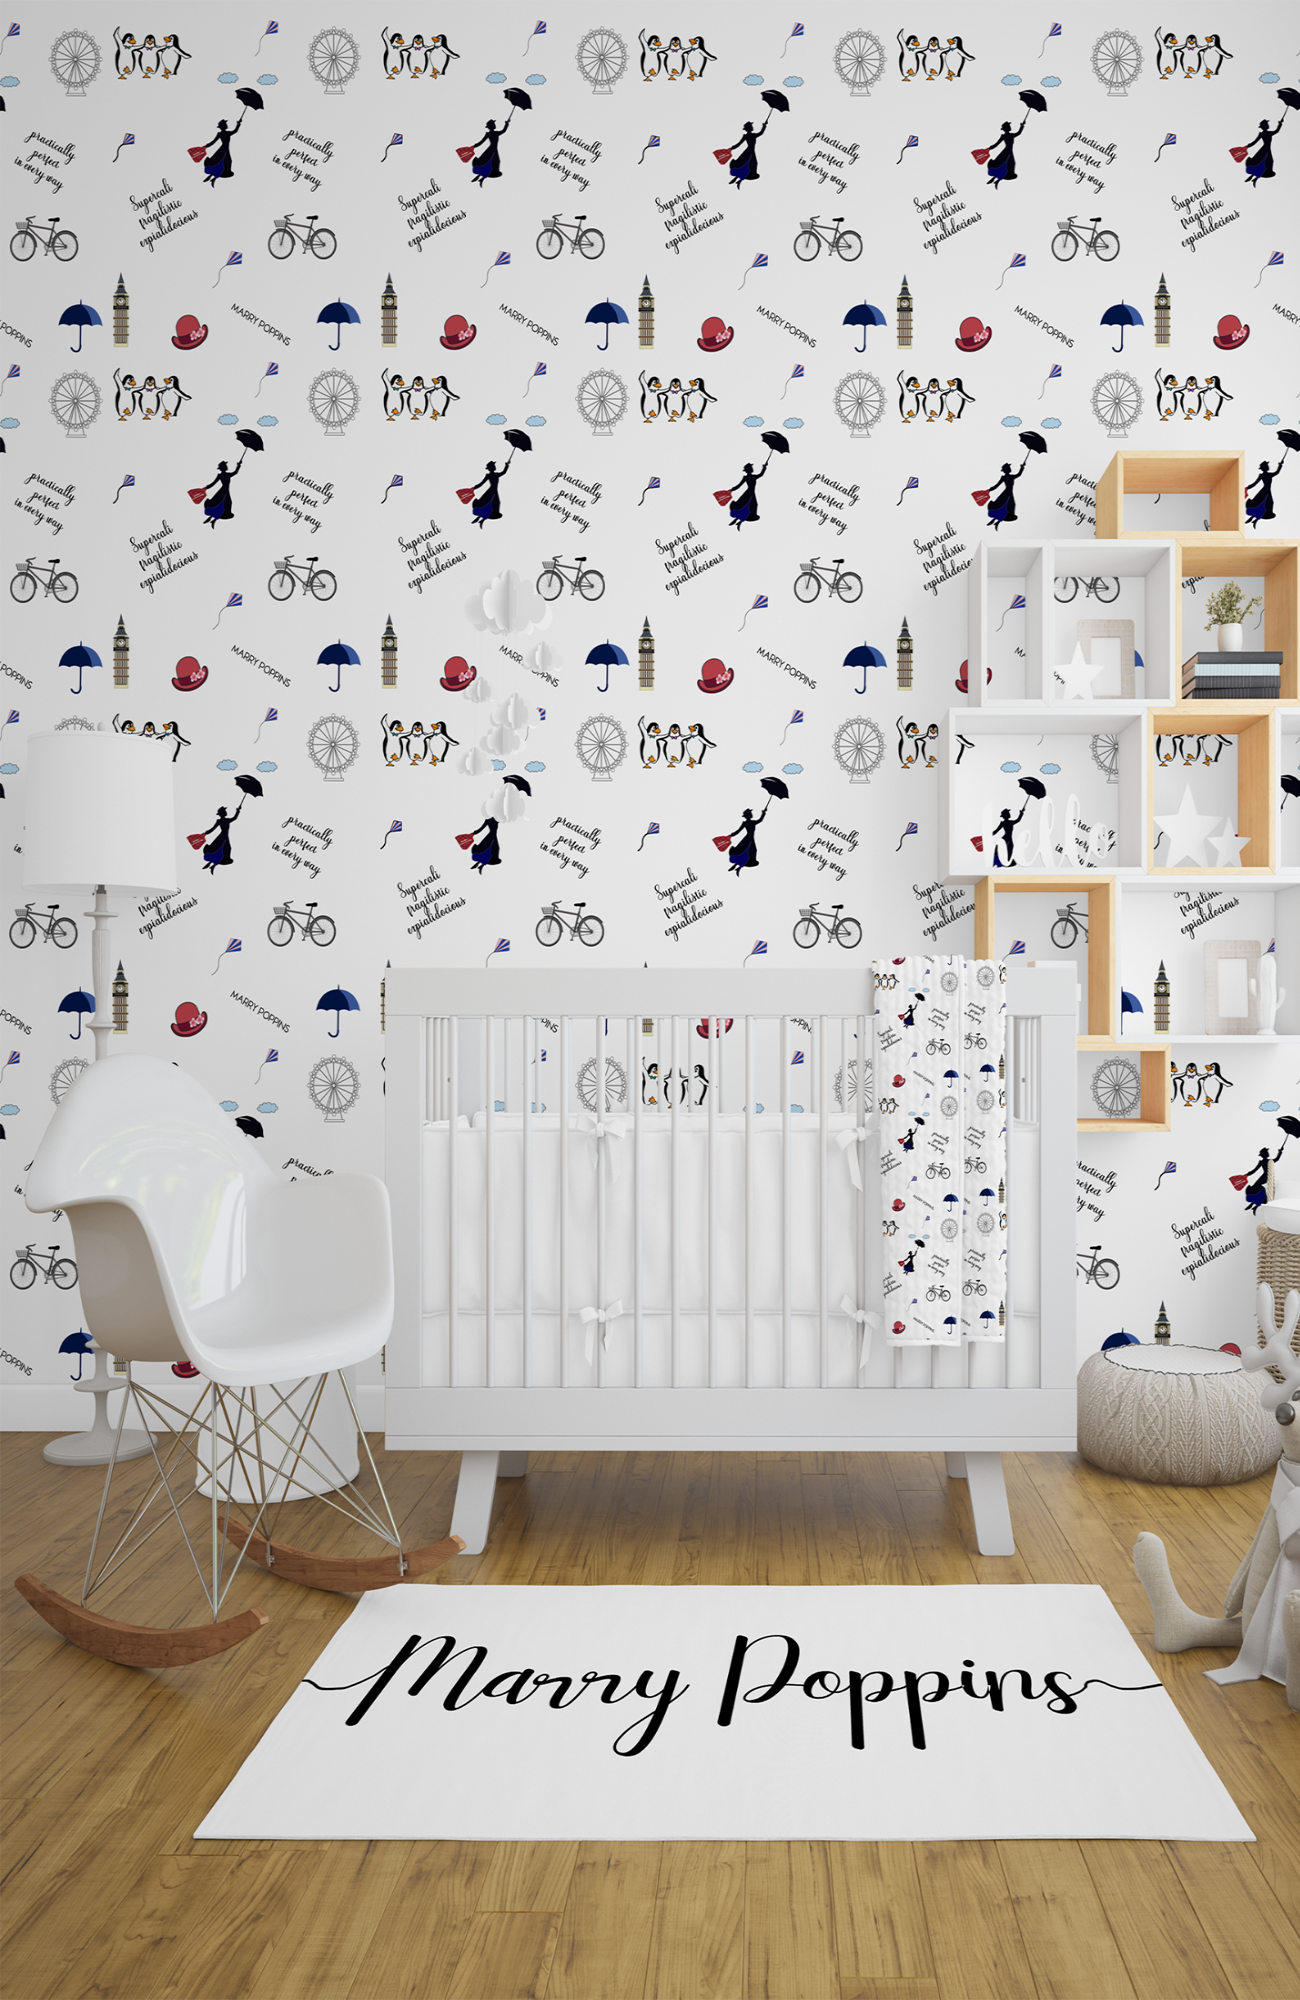 Marry Poppins Quotes Wallpaper Peel And Paste Wallpaper Into The Children S Space Baby Room Decor Kid Spaces Childrens Bedrooms